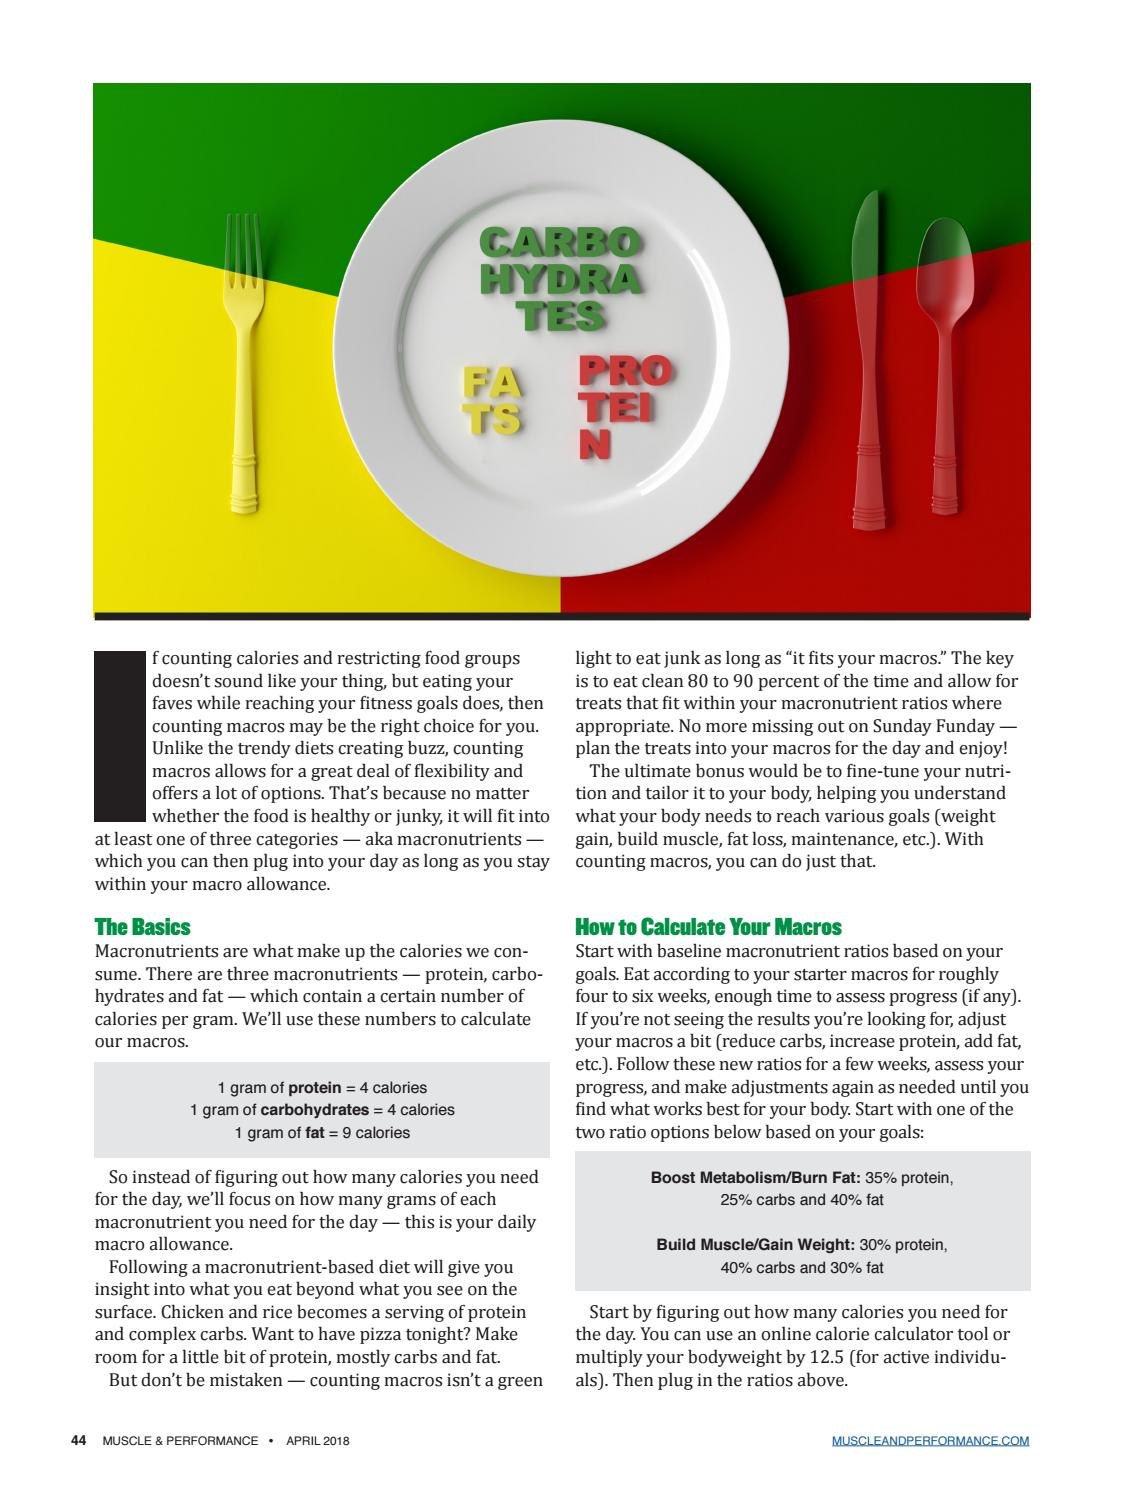 Carbs protein fat ratio build muscle